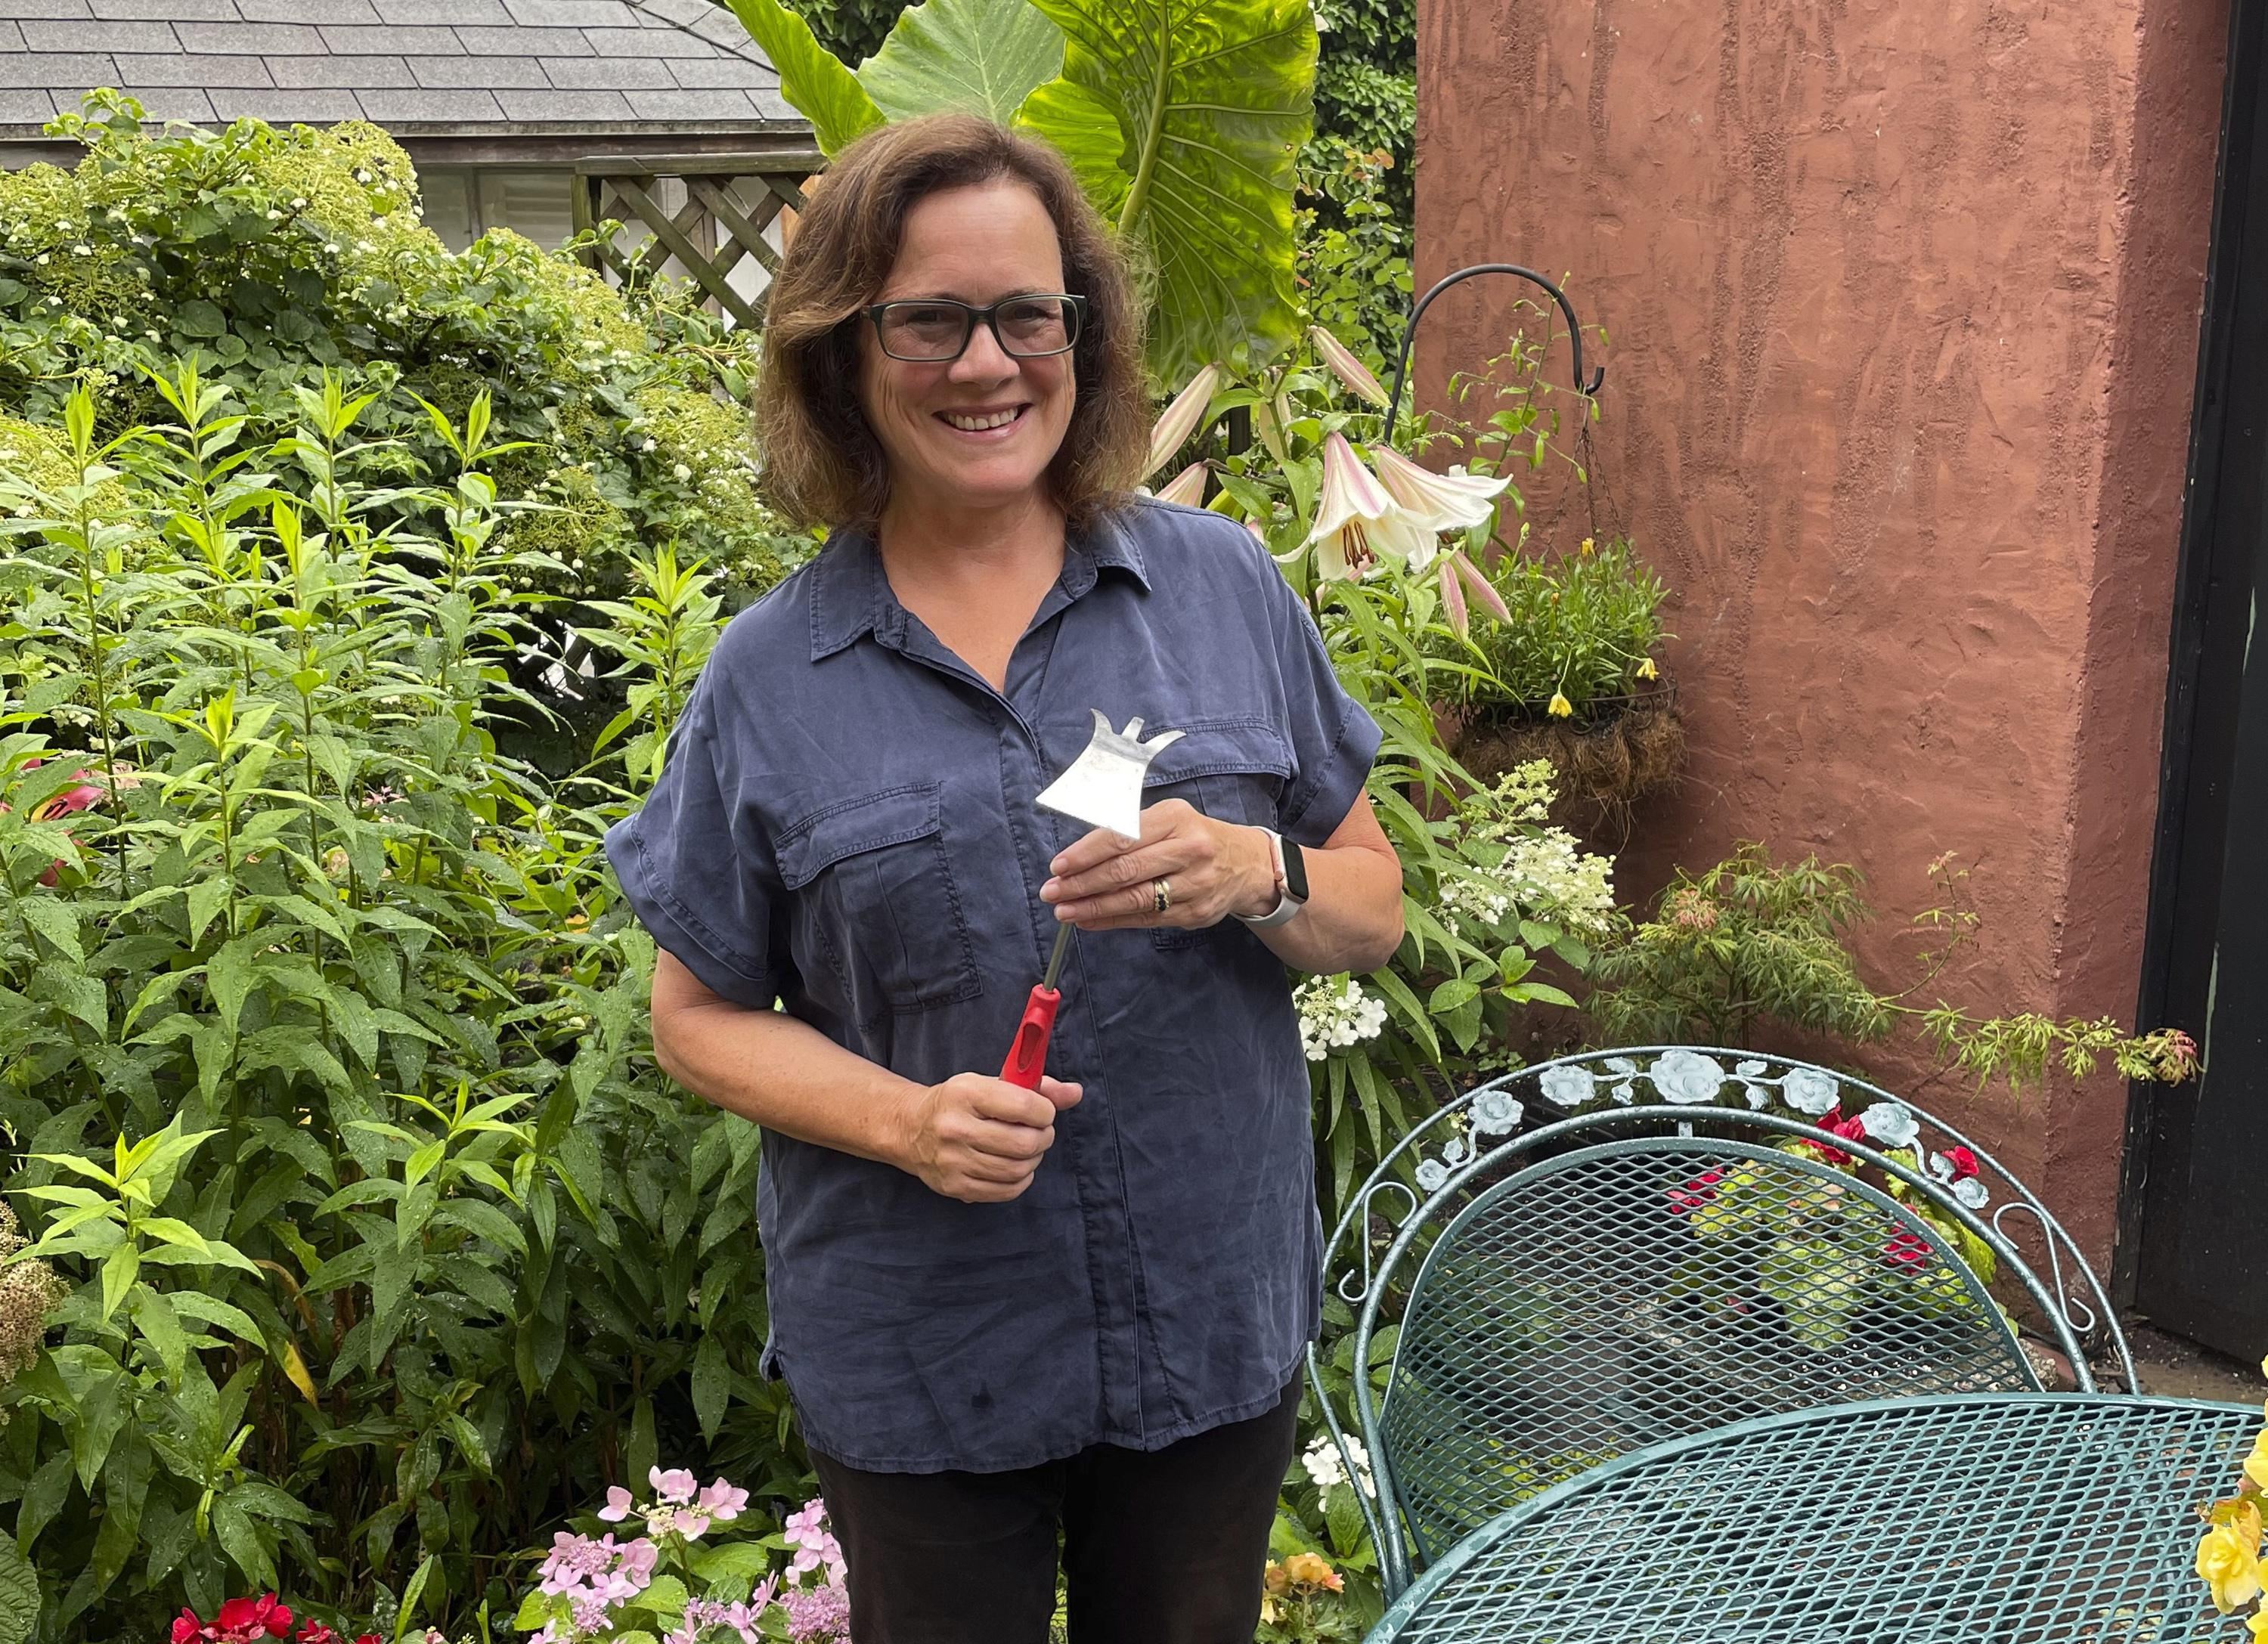 Moderating a Facebook gardening group in western New York is not without challenges. There are complaints of wooly bugs, inclement weather and the nov